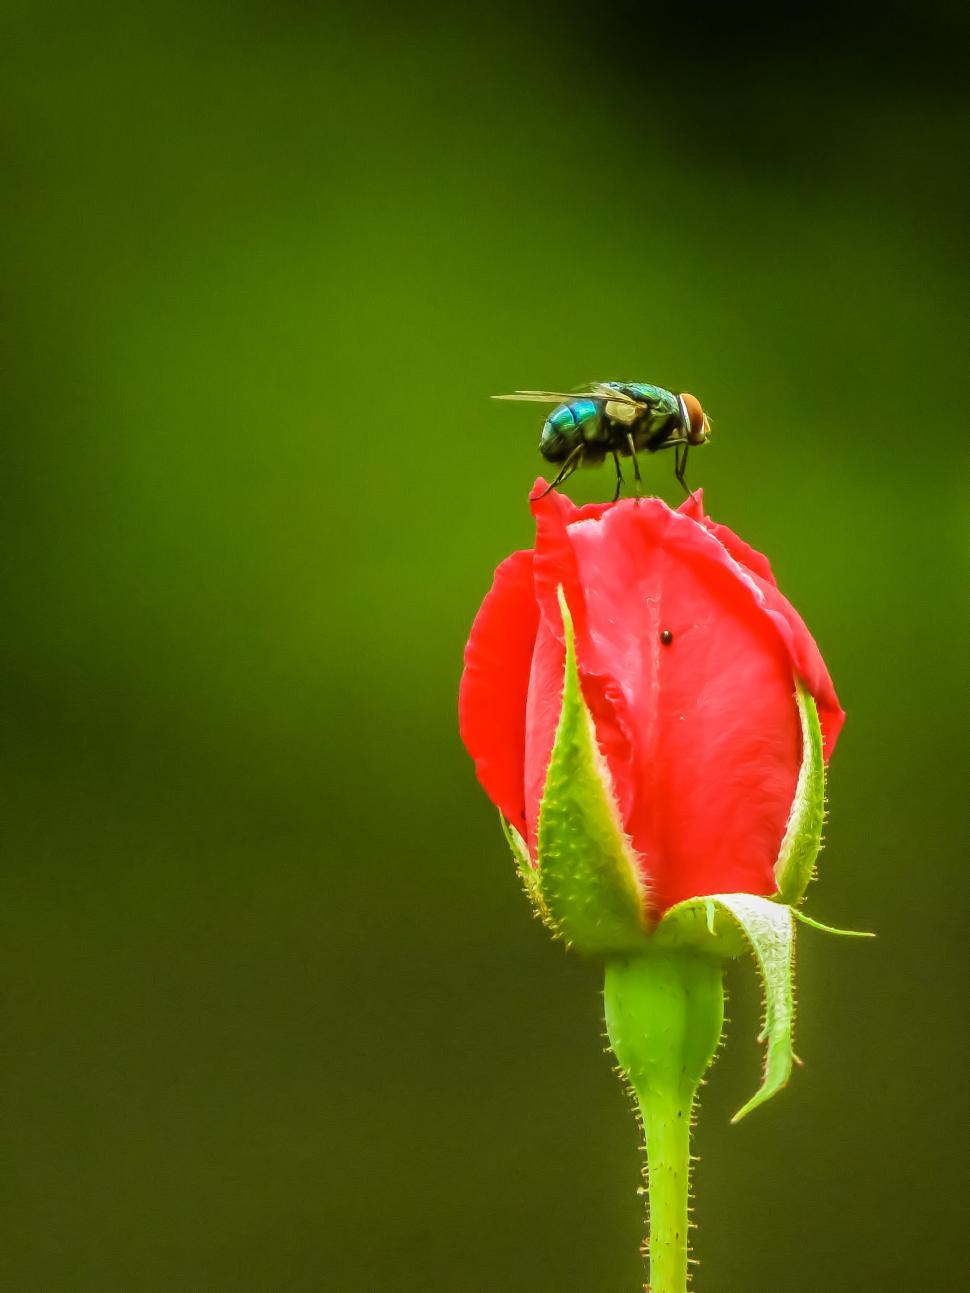 Download Free Stock Photo of Fly on the rose